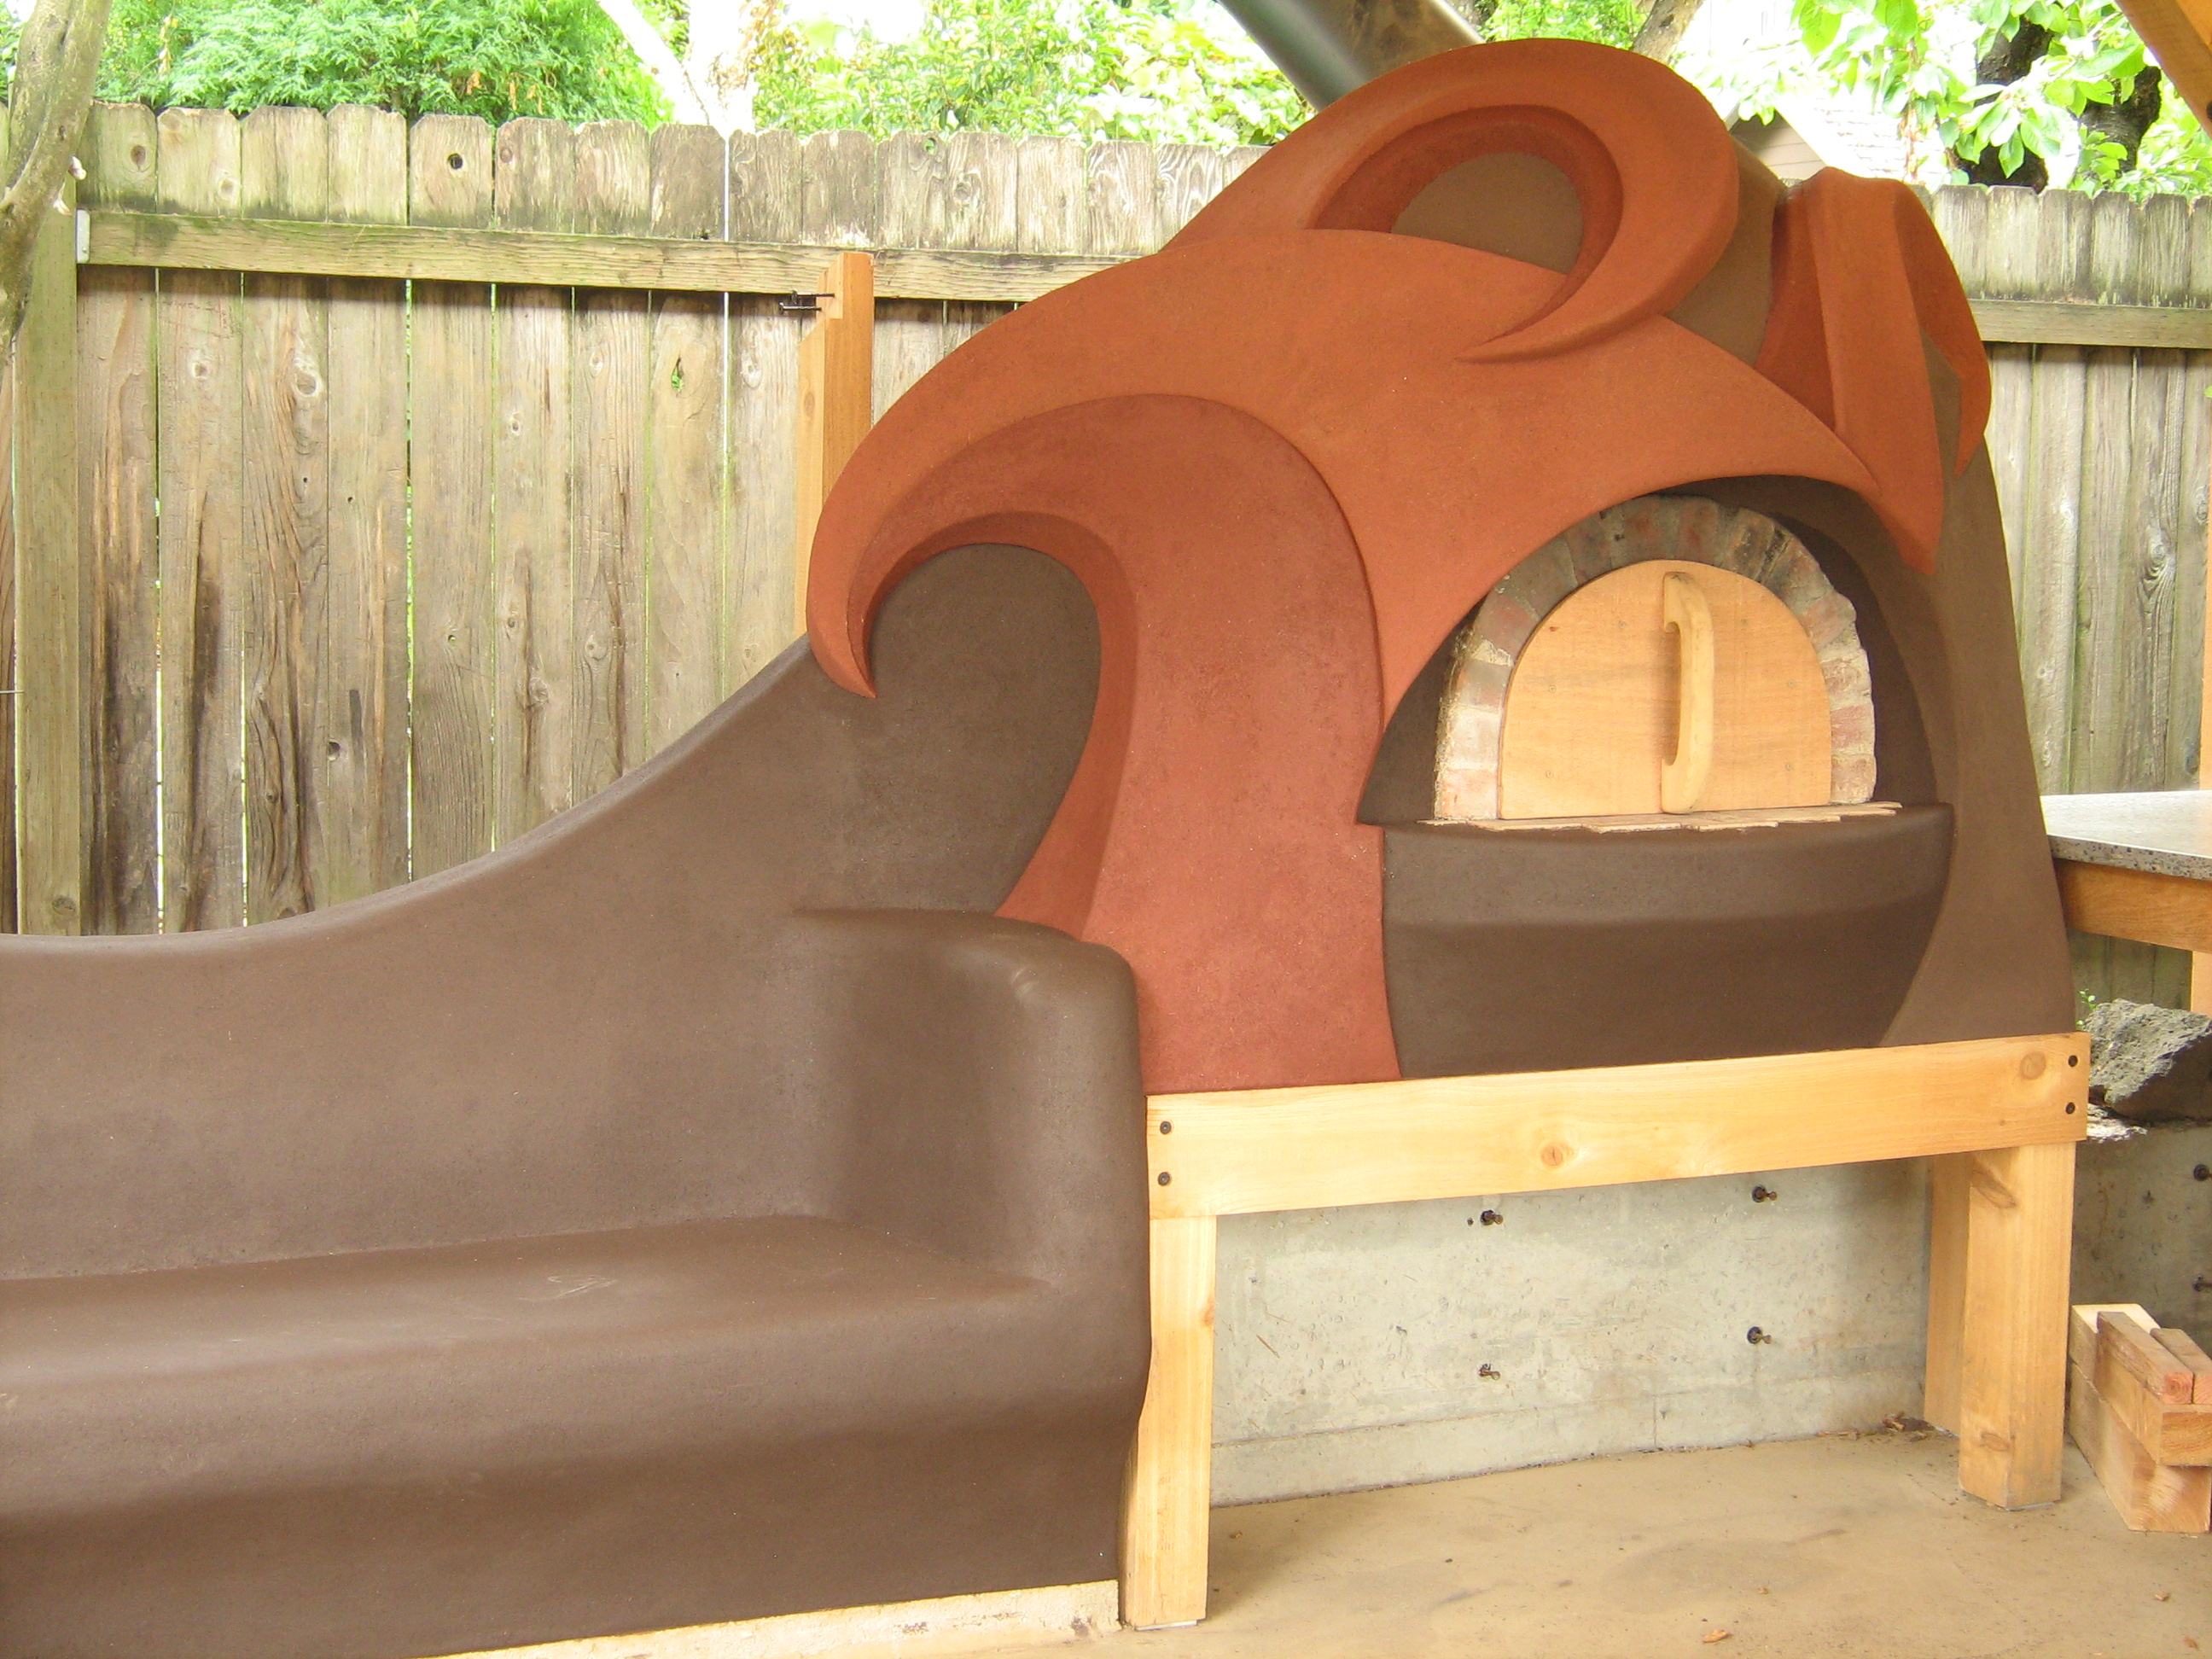 Kagan Bench & Oven (Oven pictured)